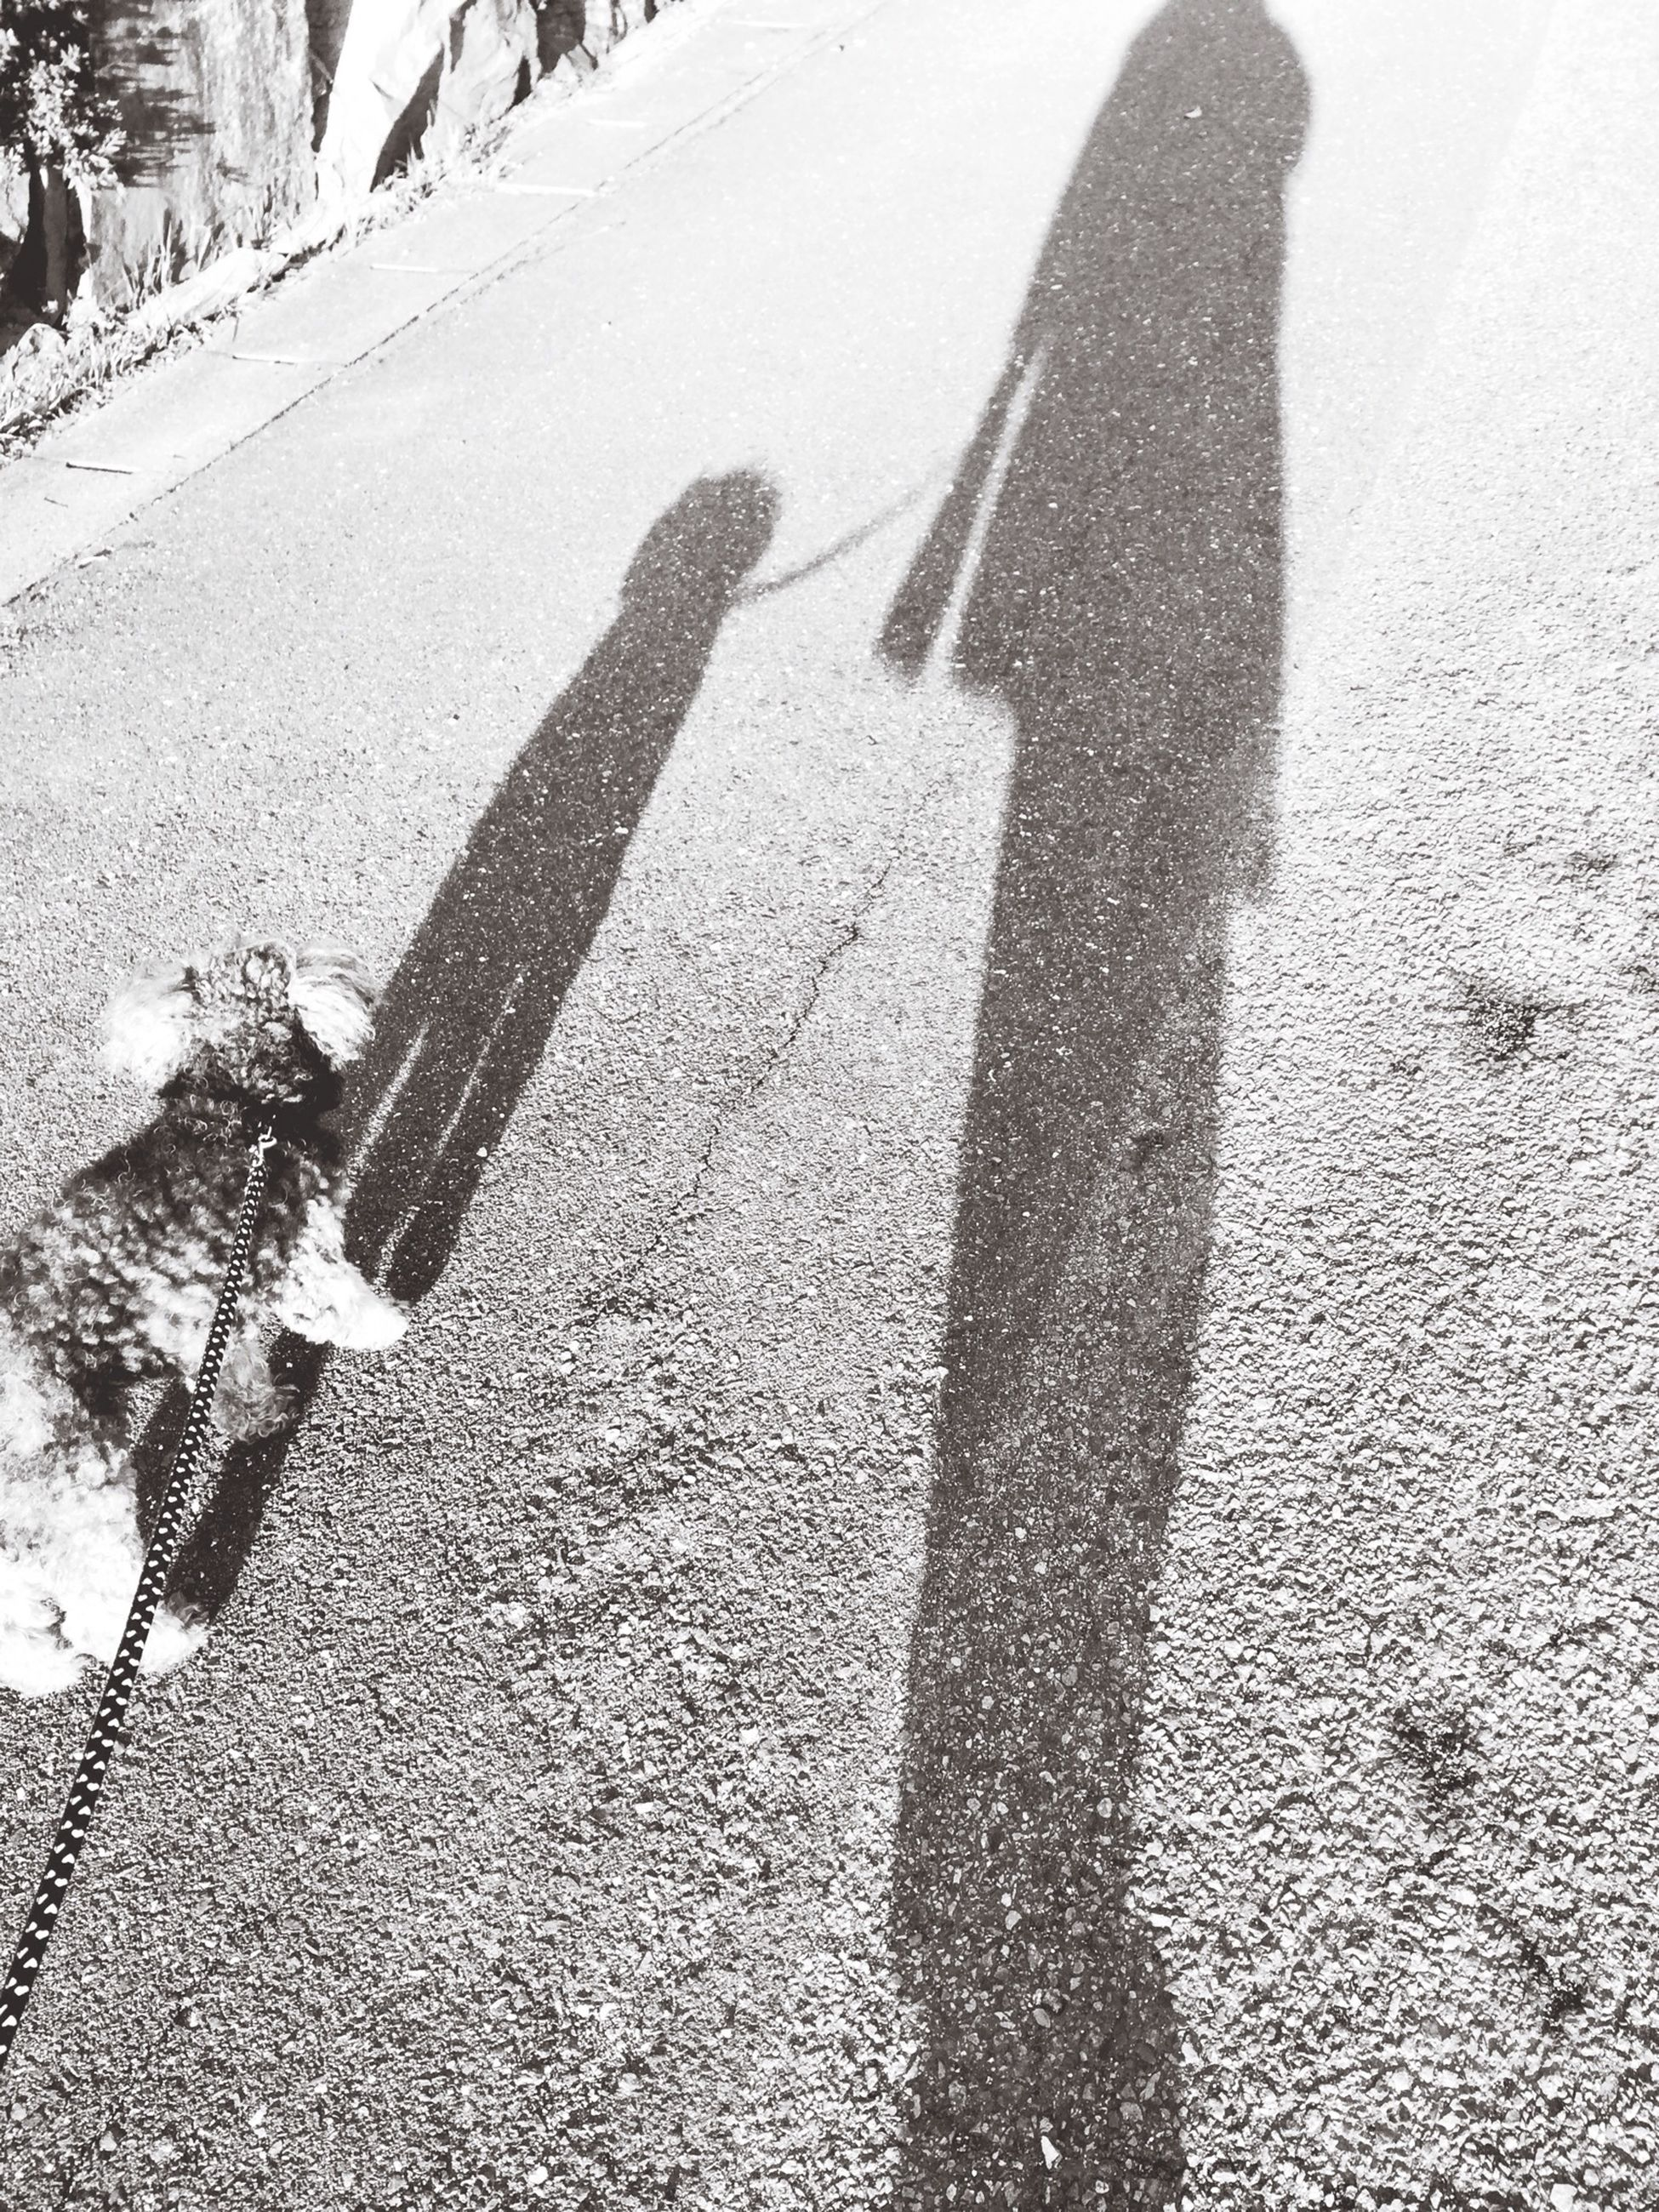 shadow, street, road, high angle view, sunlight, focus on shadow, transportation, road marking, unrecognizable person, asphalt, lifestyles, day, outdoors, leisure activity, men, walking, the way forward